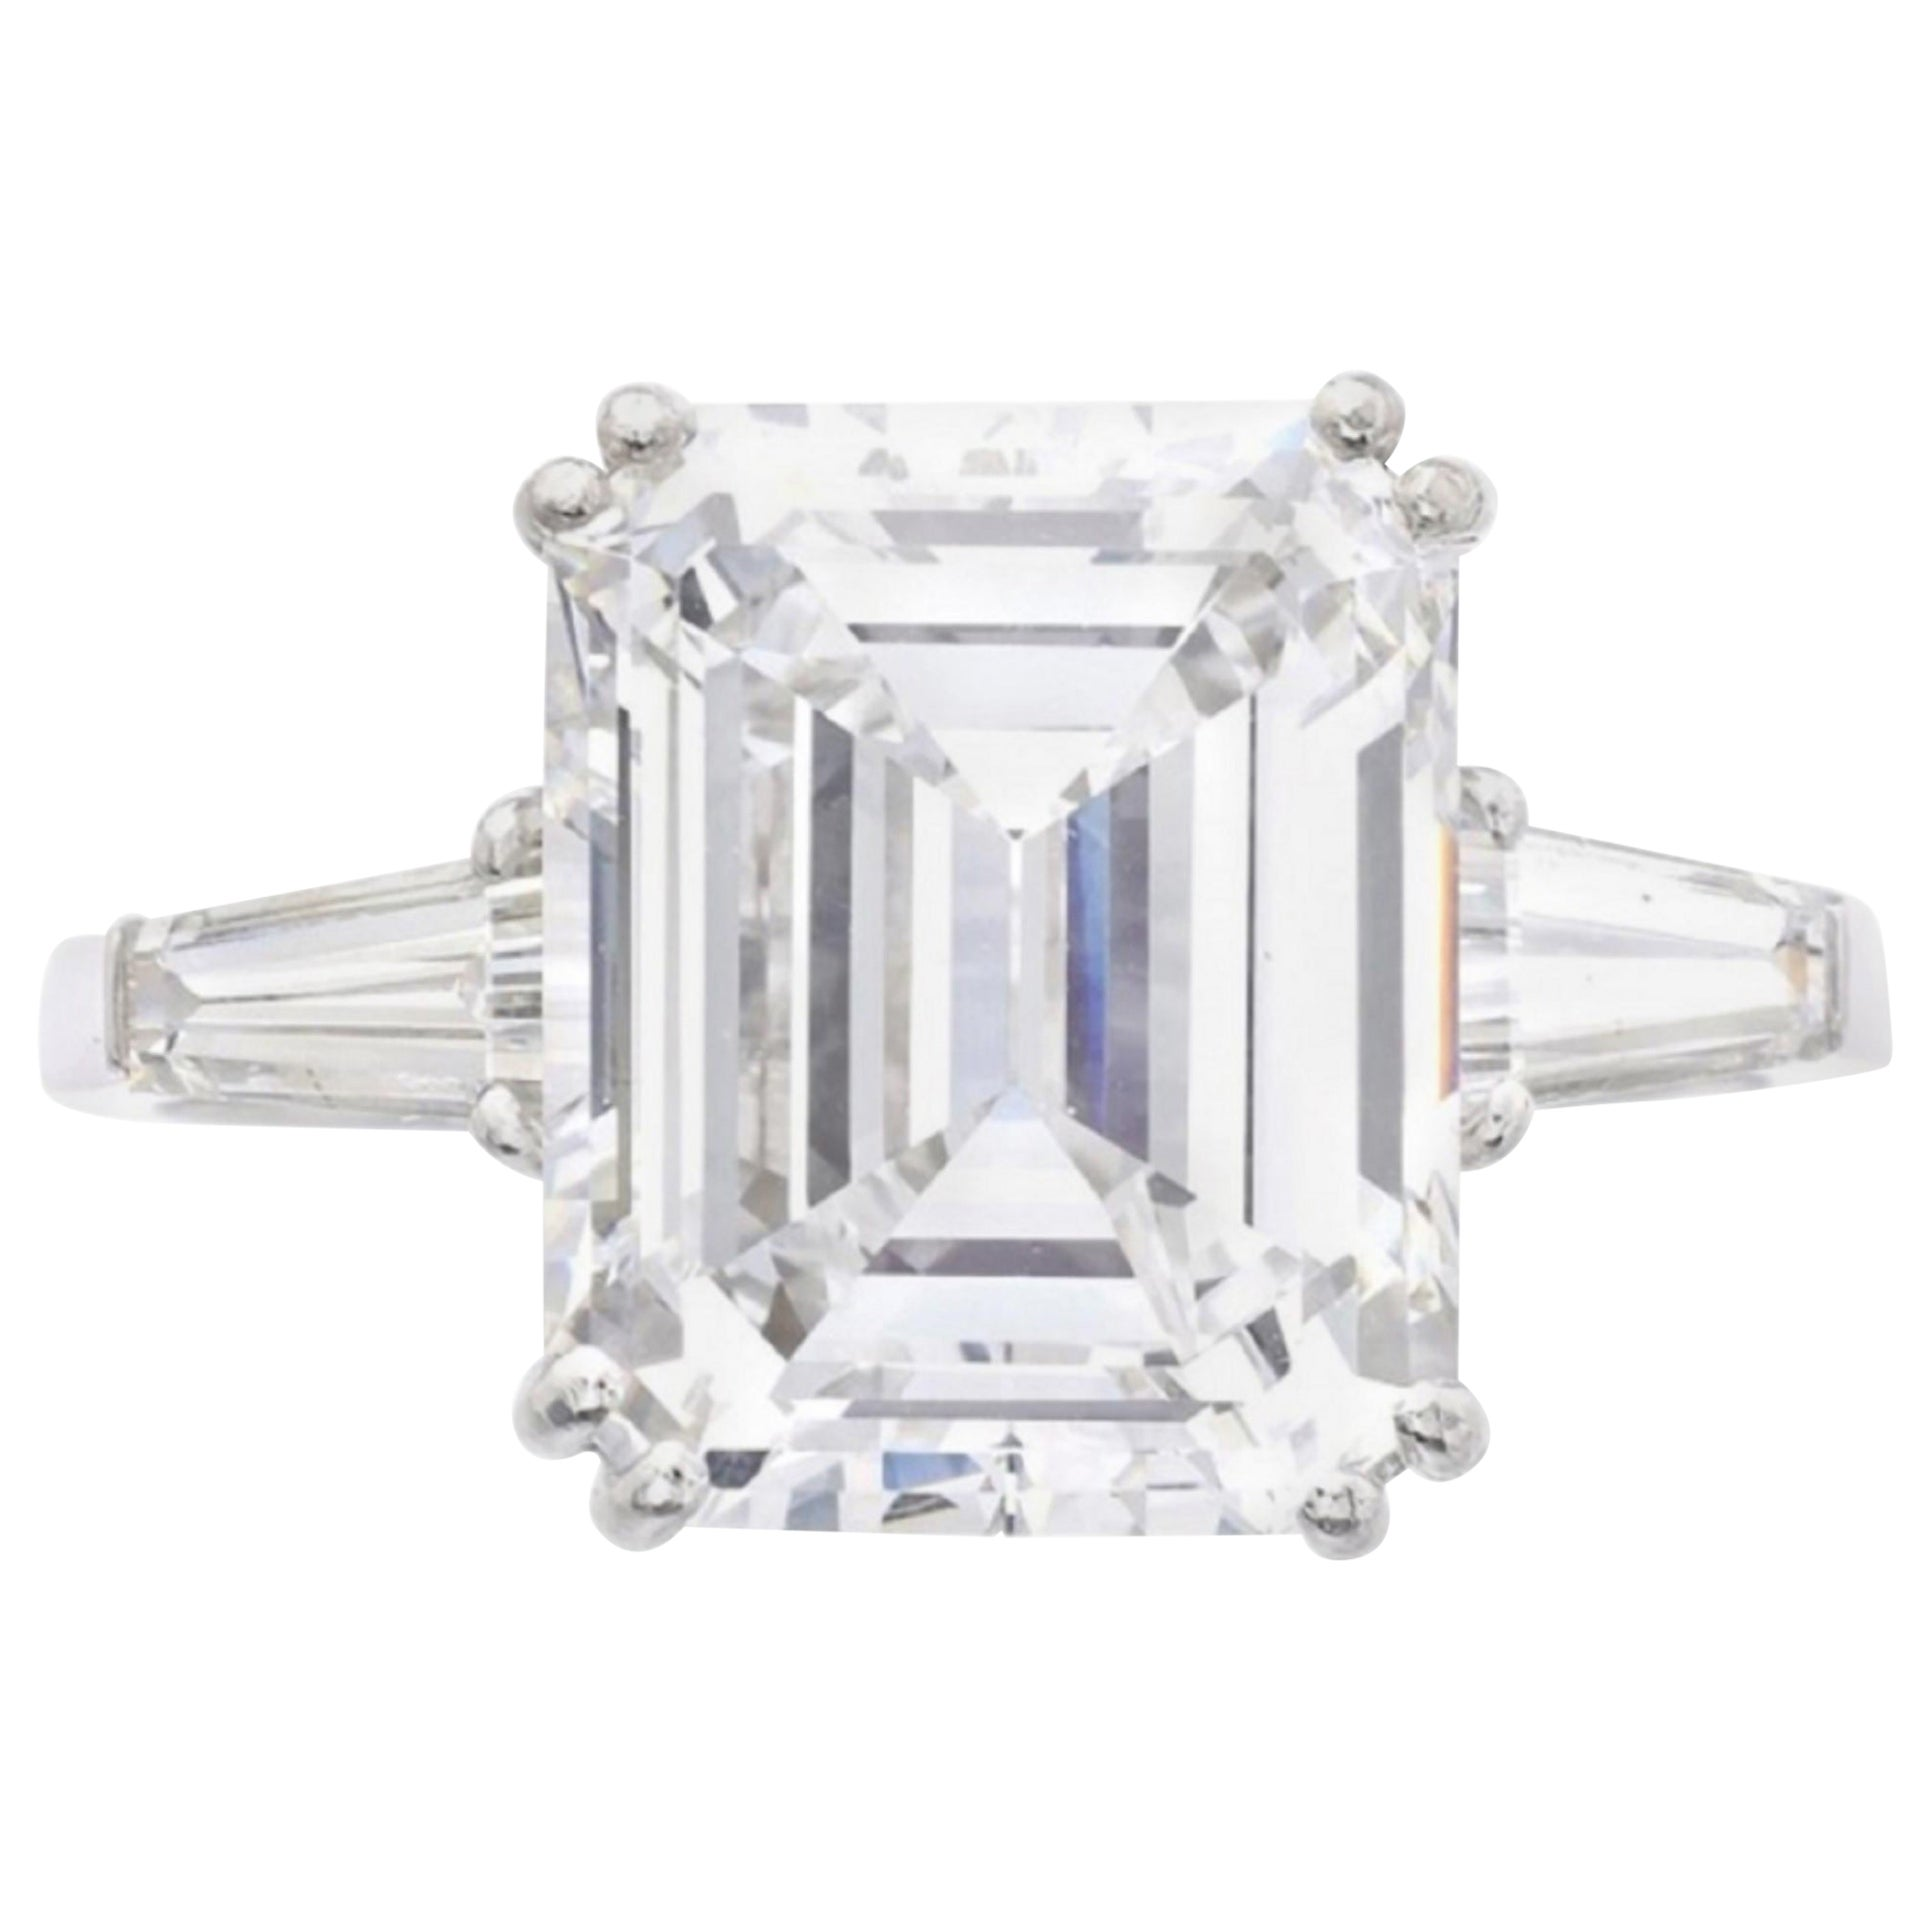 GIA Certified 3 Emerald Cut Diamond D Color VVS2 Clarity